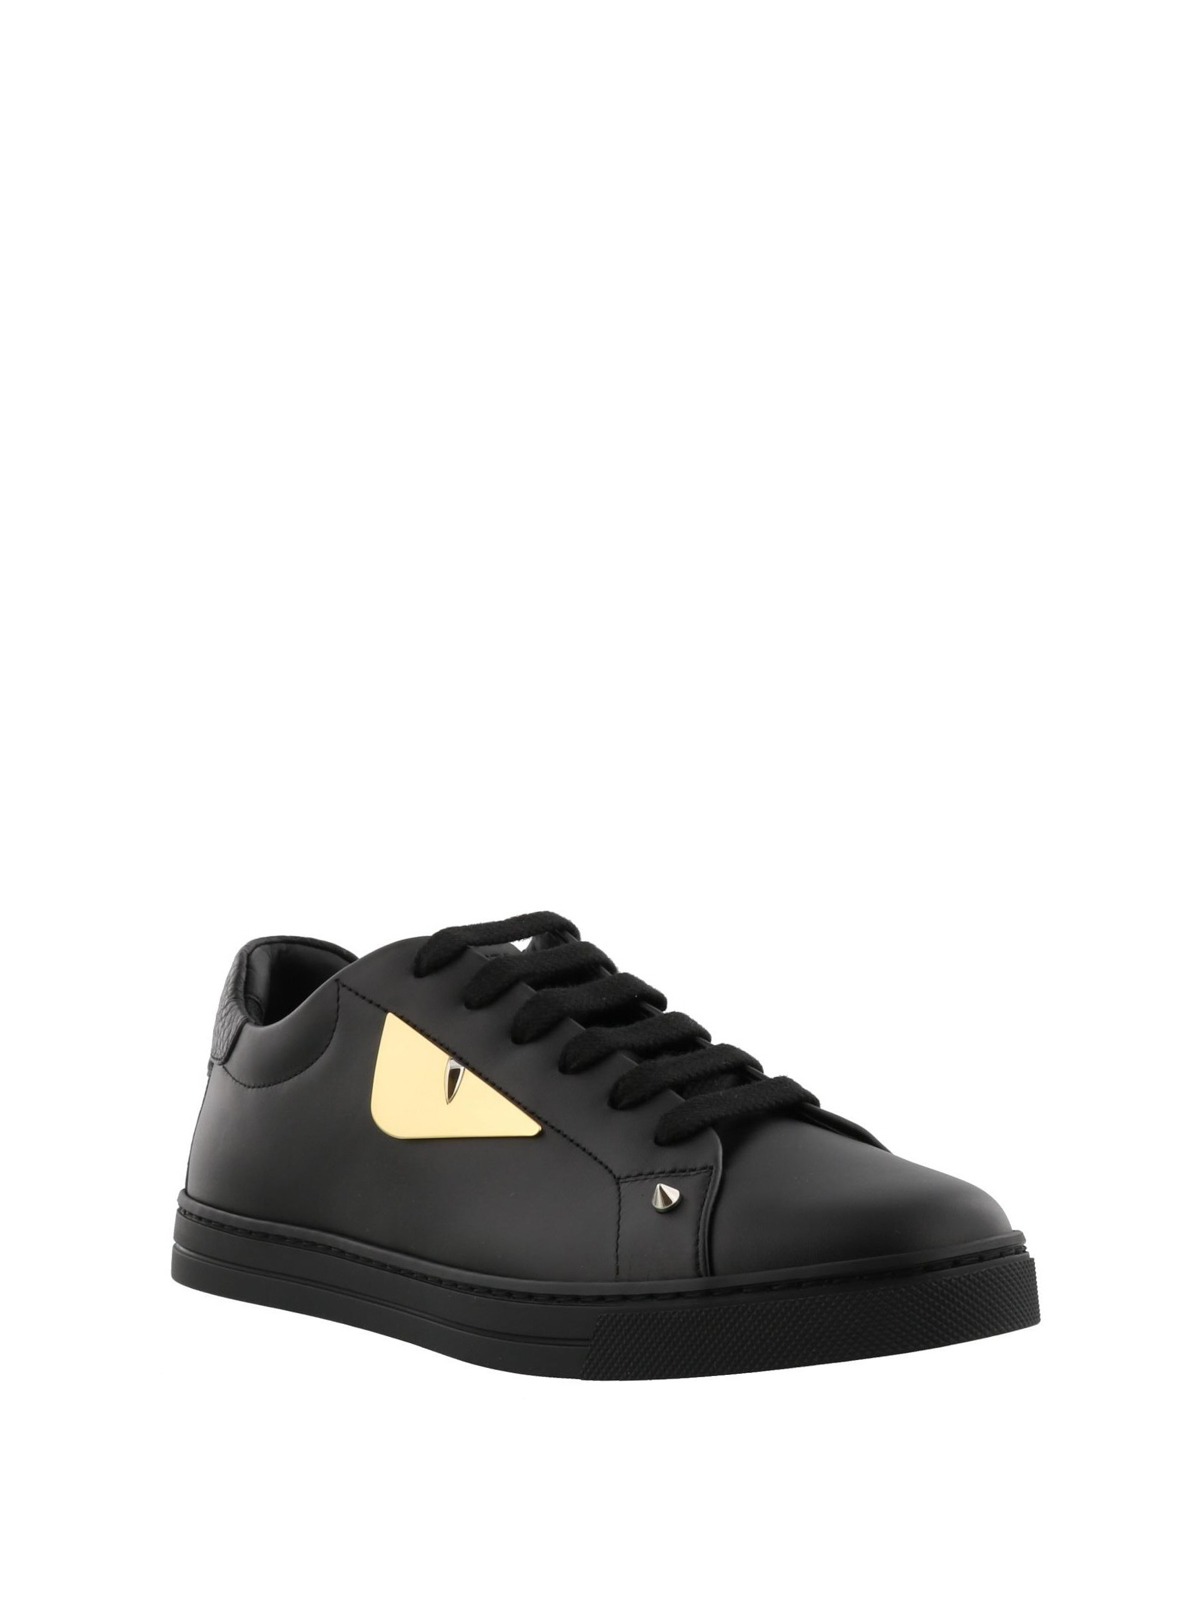 904ec48bf3 Fendi - Bag Bugs studded black leather sneakers - trainers ...